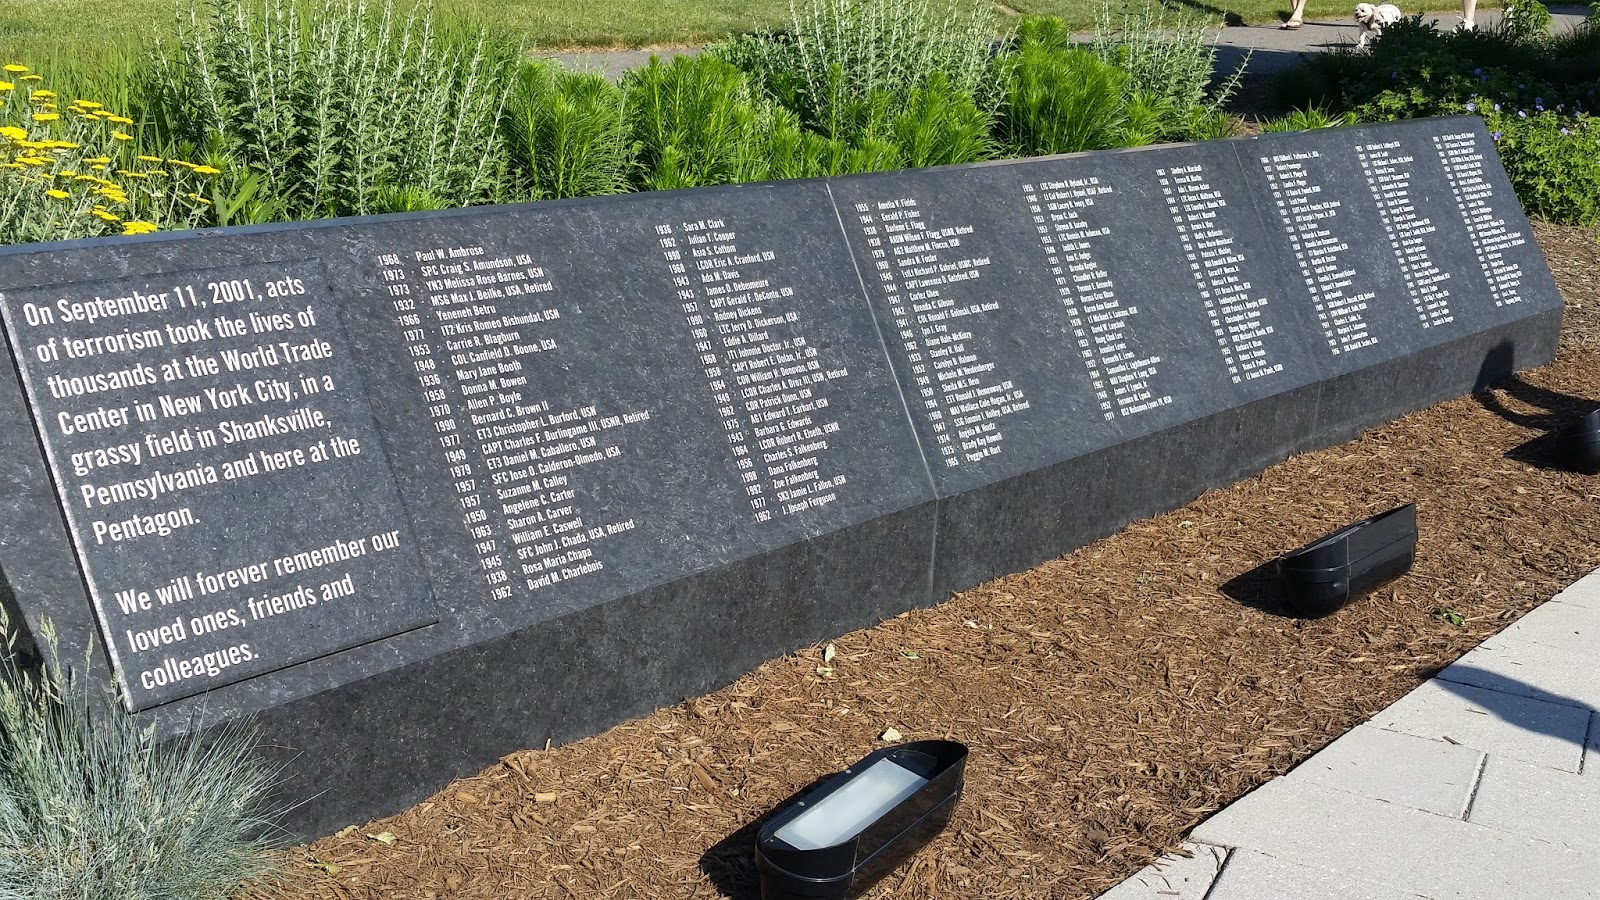 Pentagon Memorial Wall